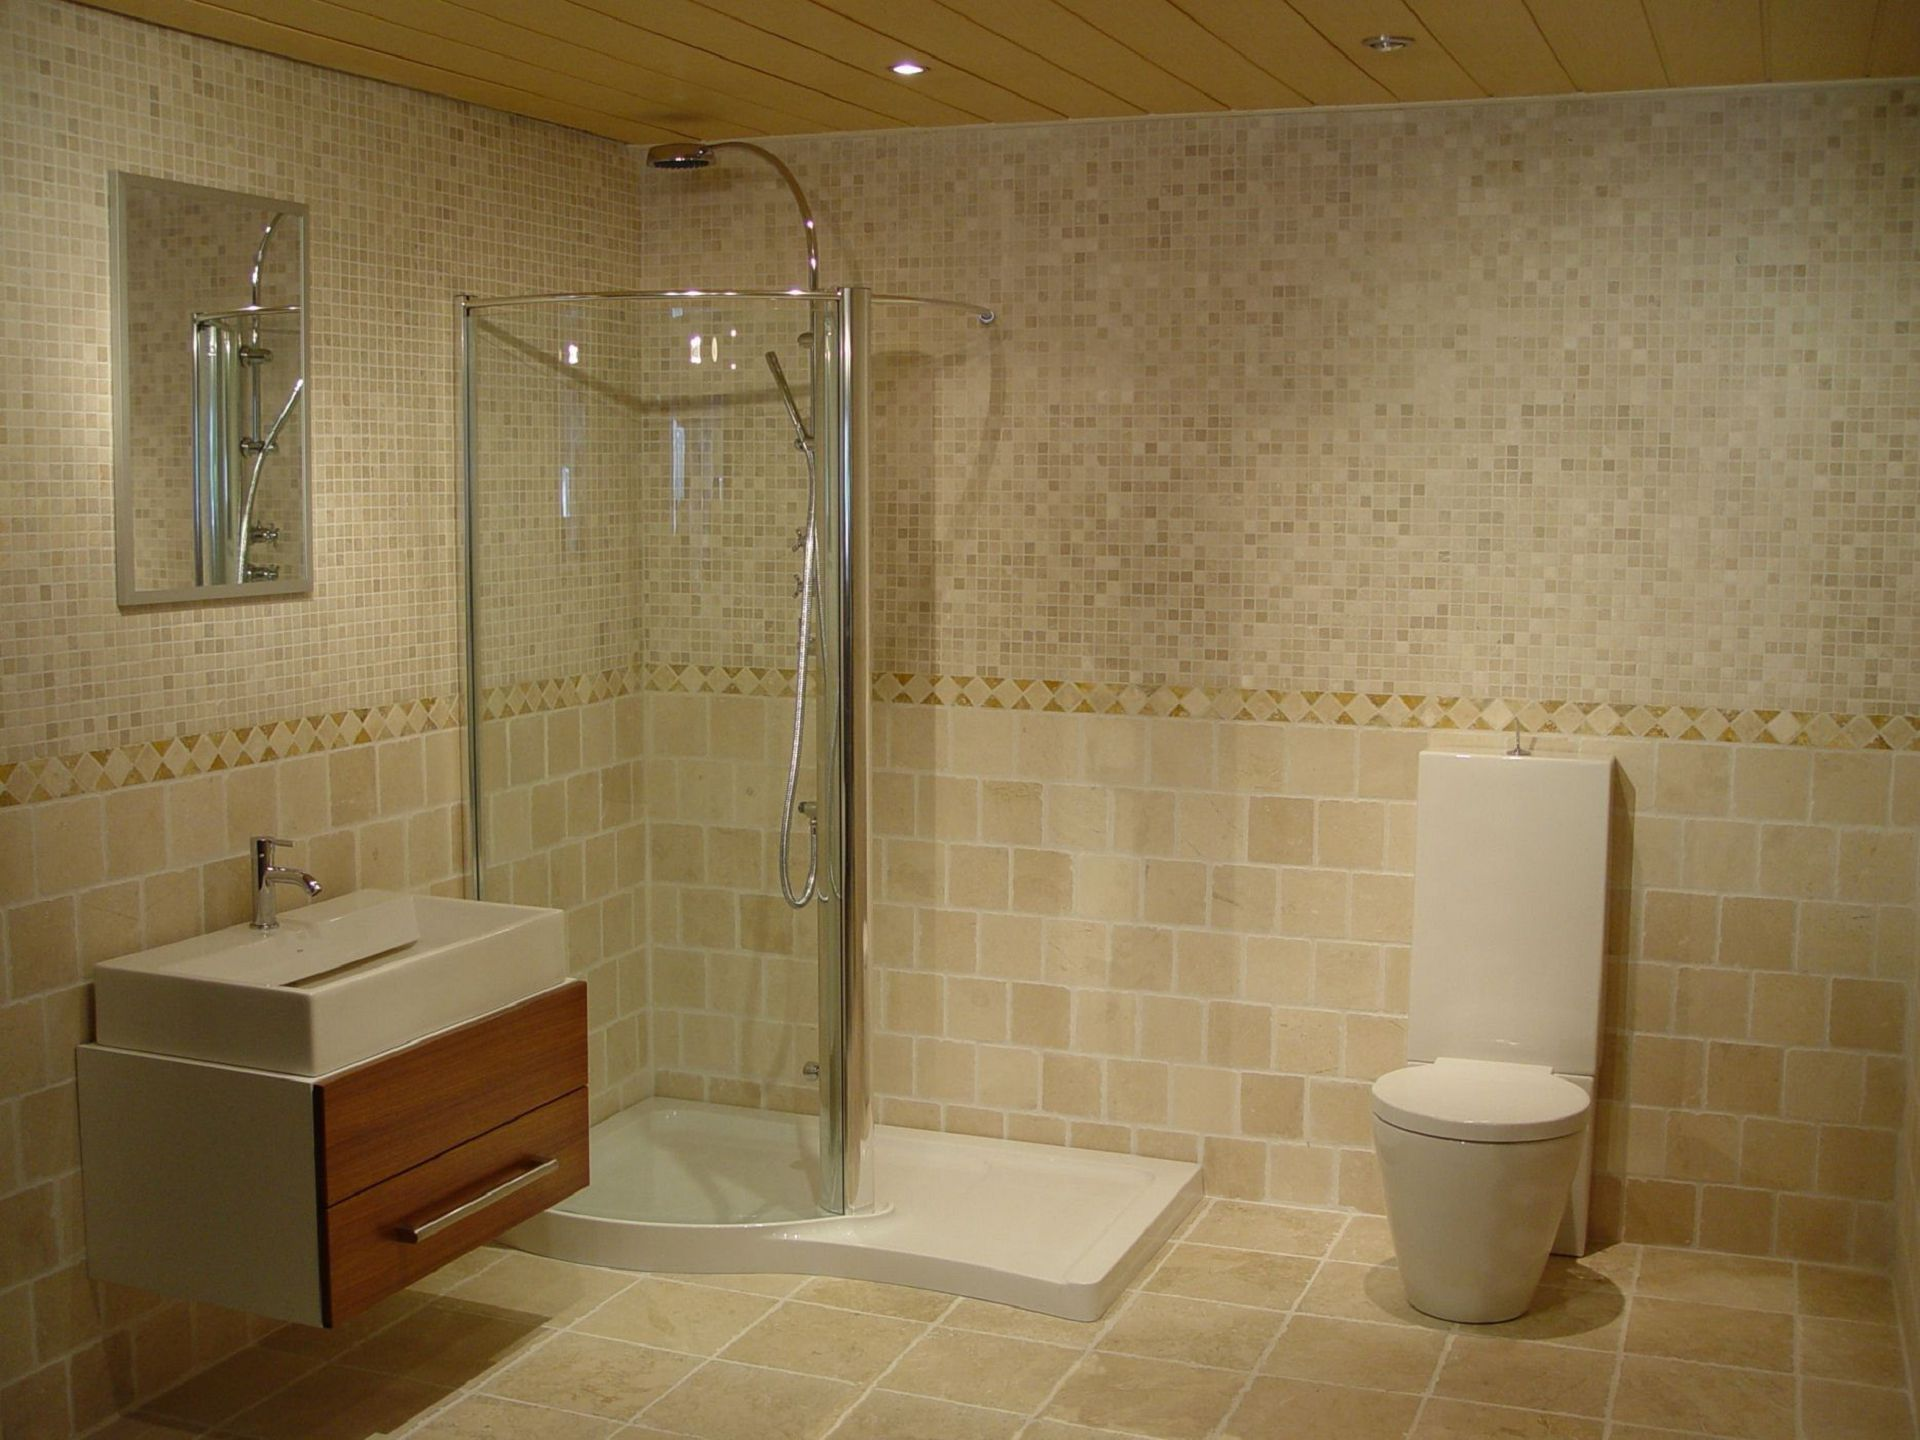 Small Bathroom Designs Ideas Hd Wallpaper Wallpaper Bathroom In The Awesome Small Bathroom Wallpaper Intended For Present House